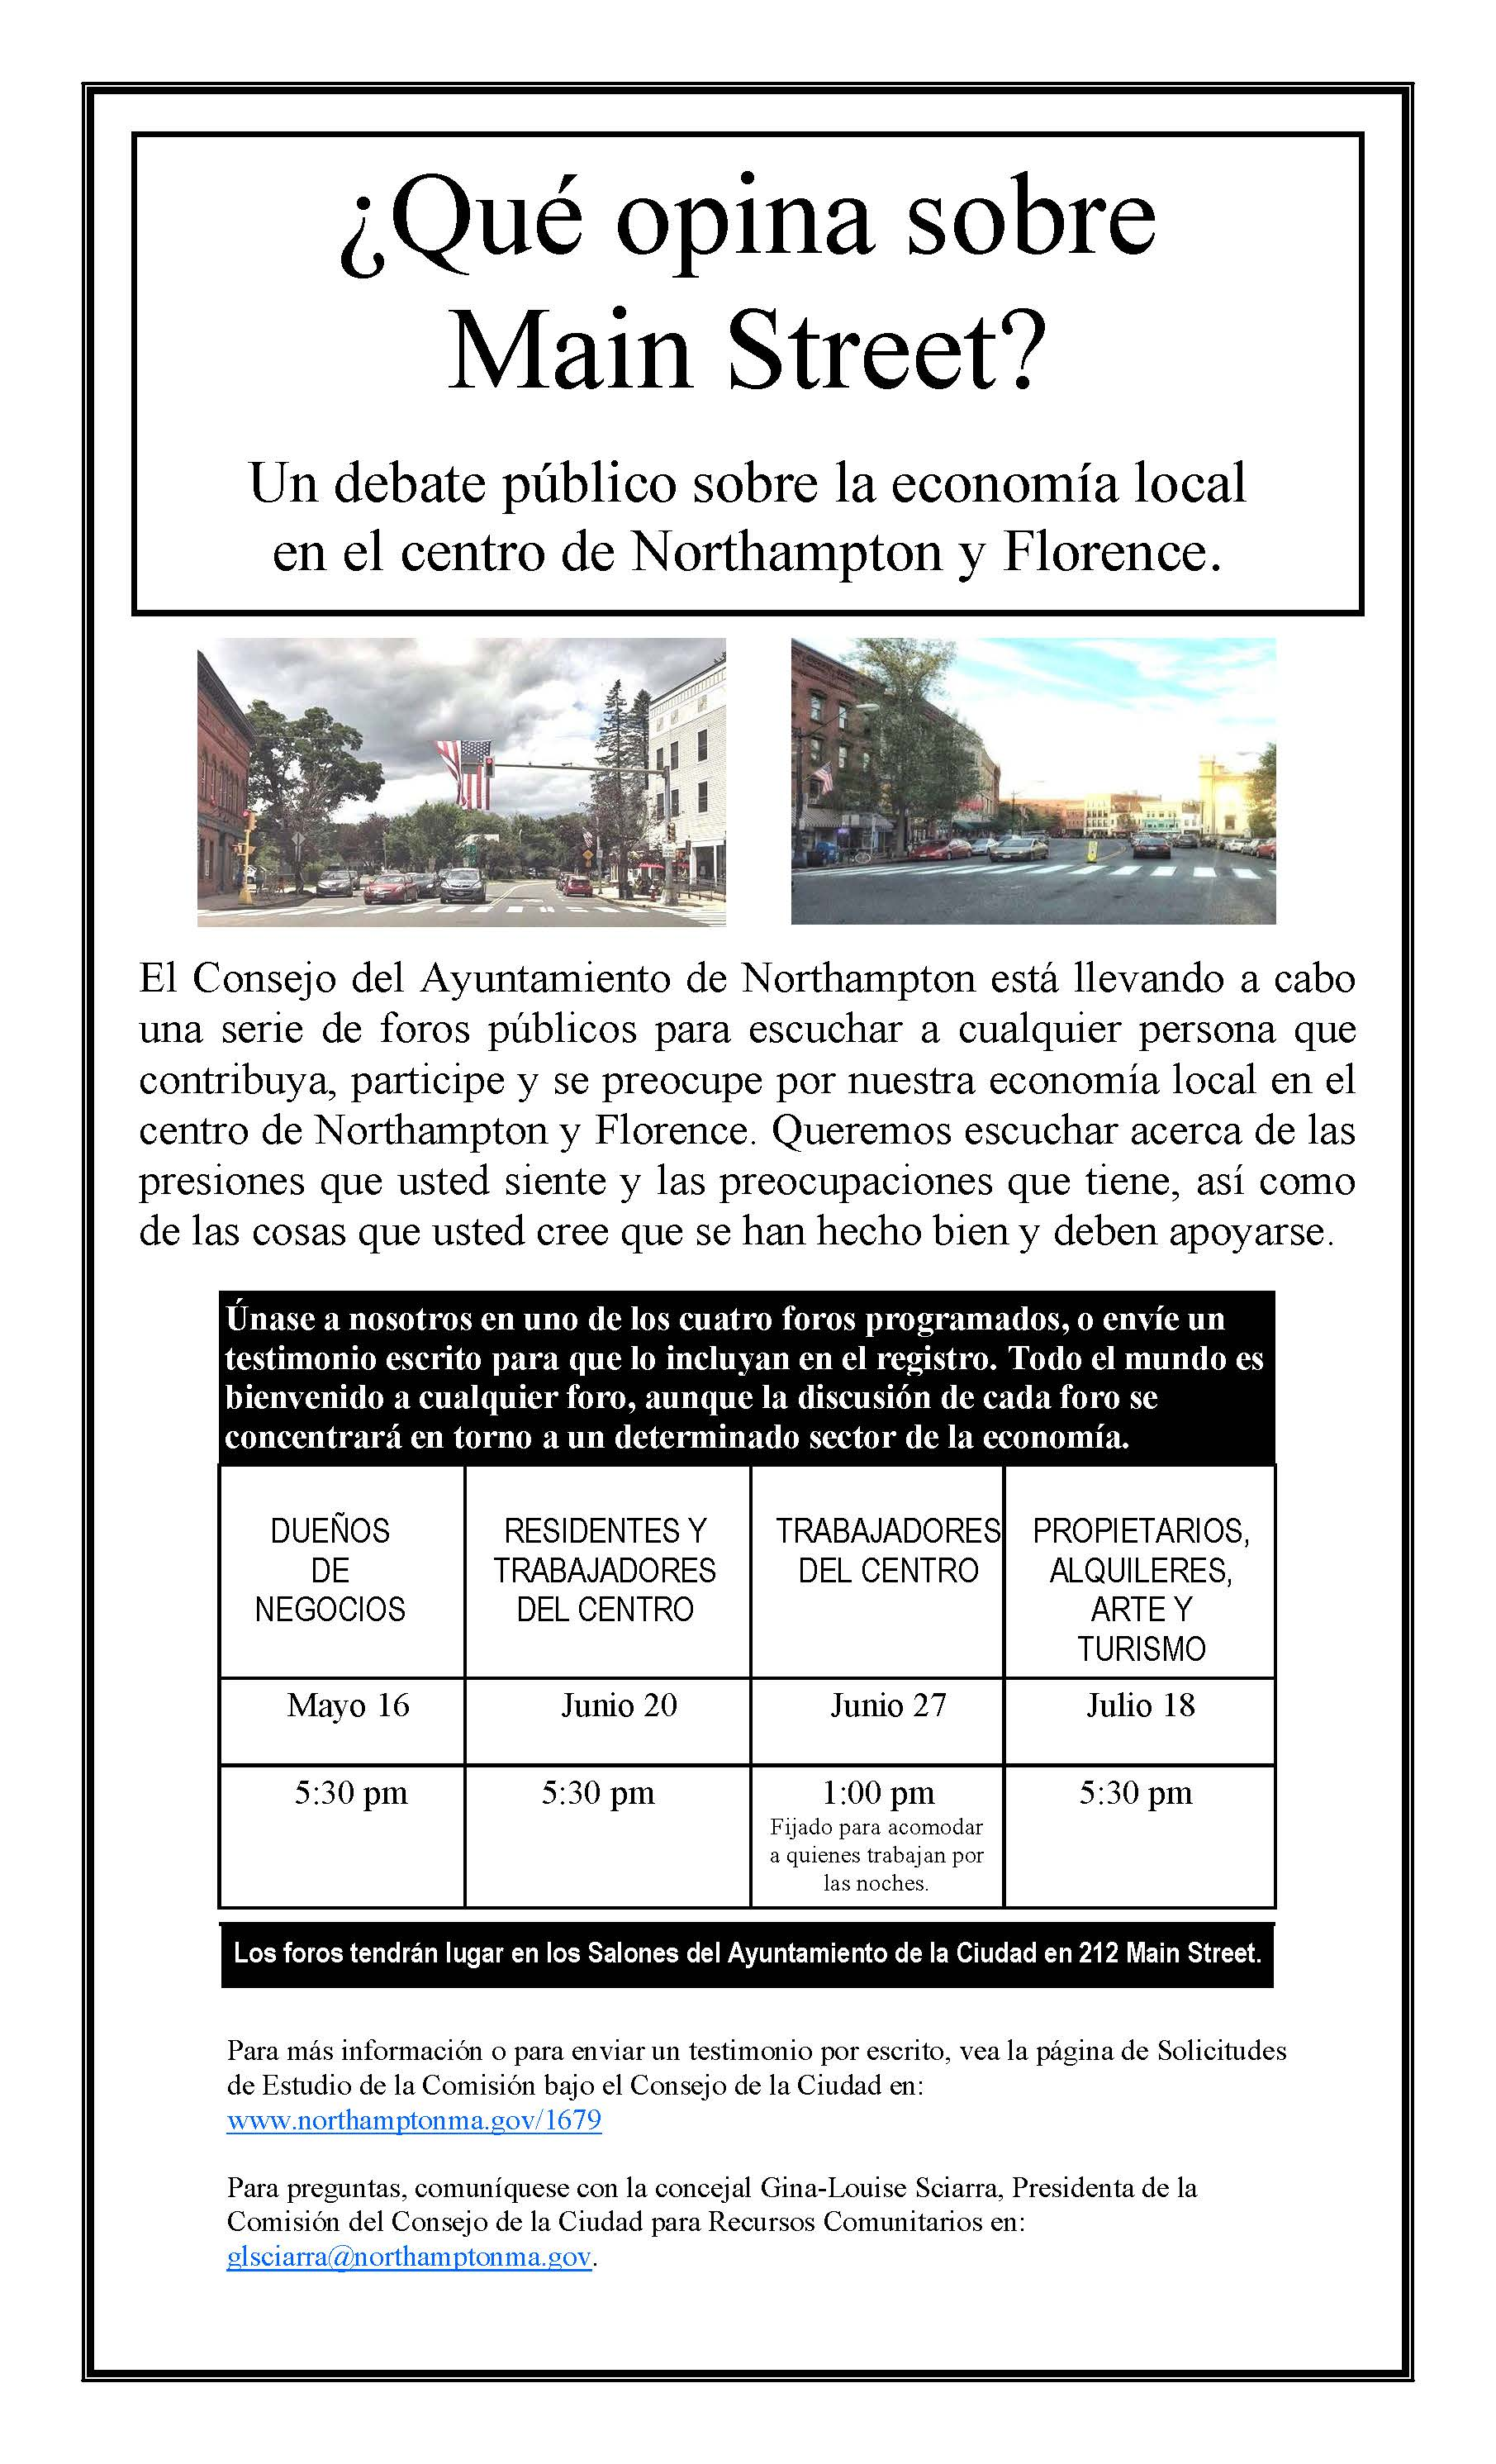 Committee Study Request Flyer in Spanish